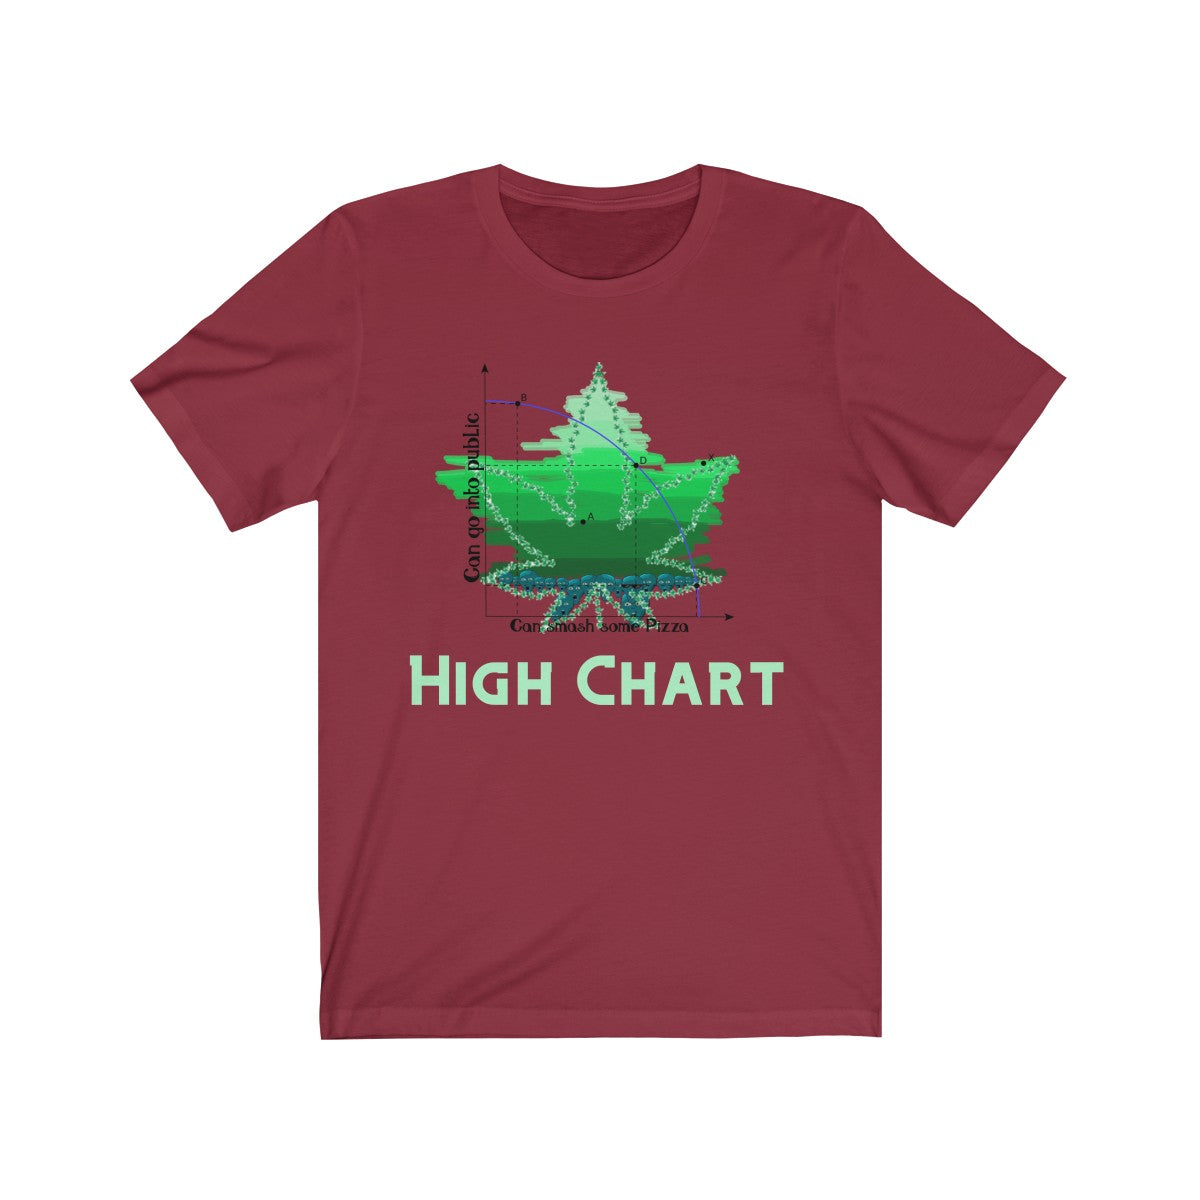 (High Chart) Unisex Jersey Short Sleeve Tee - LOL, I NEED That!